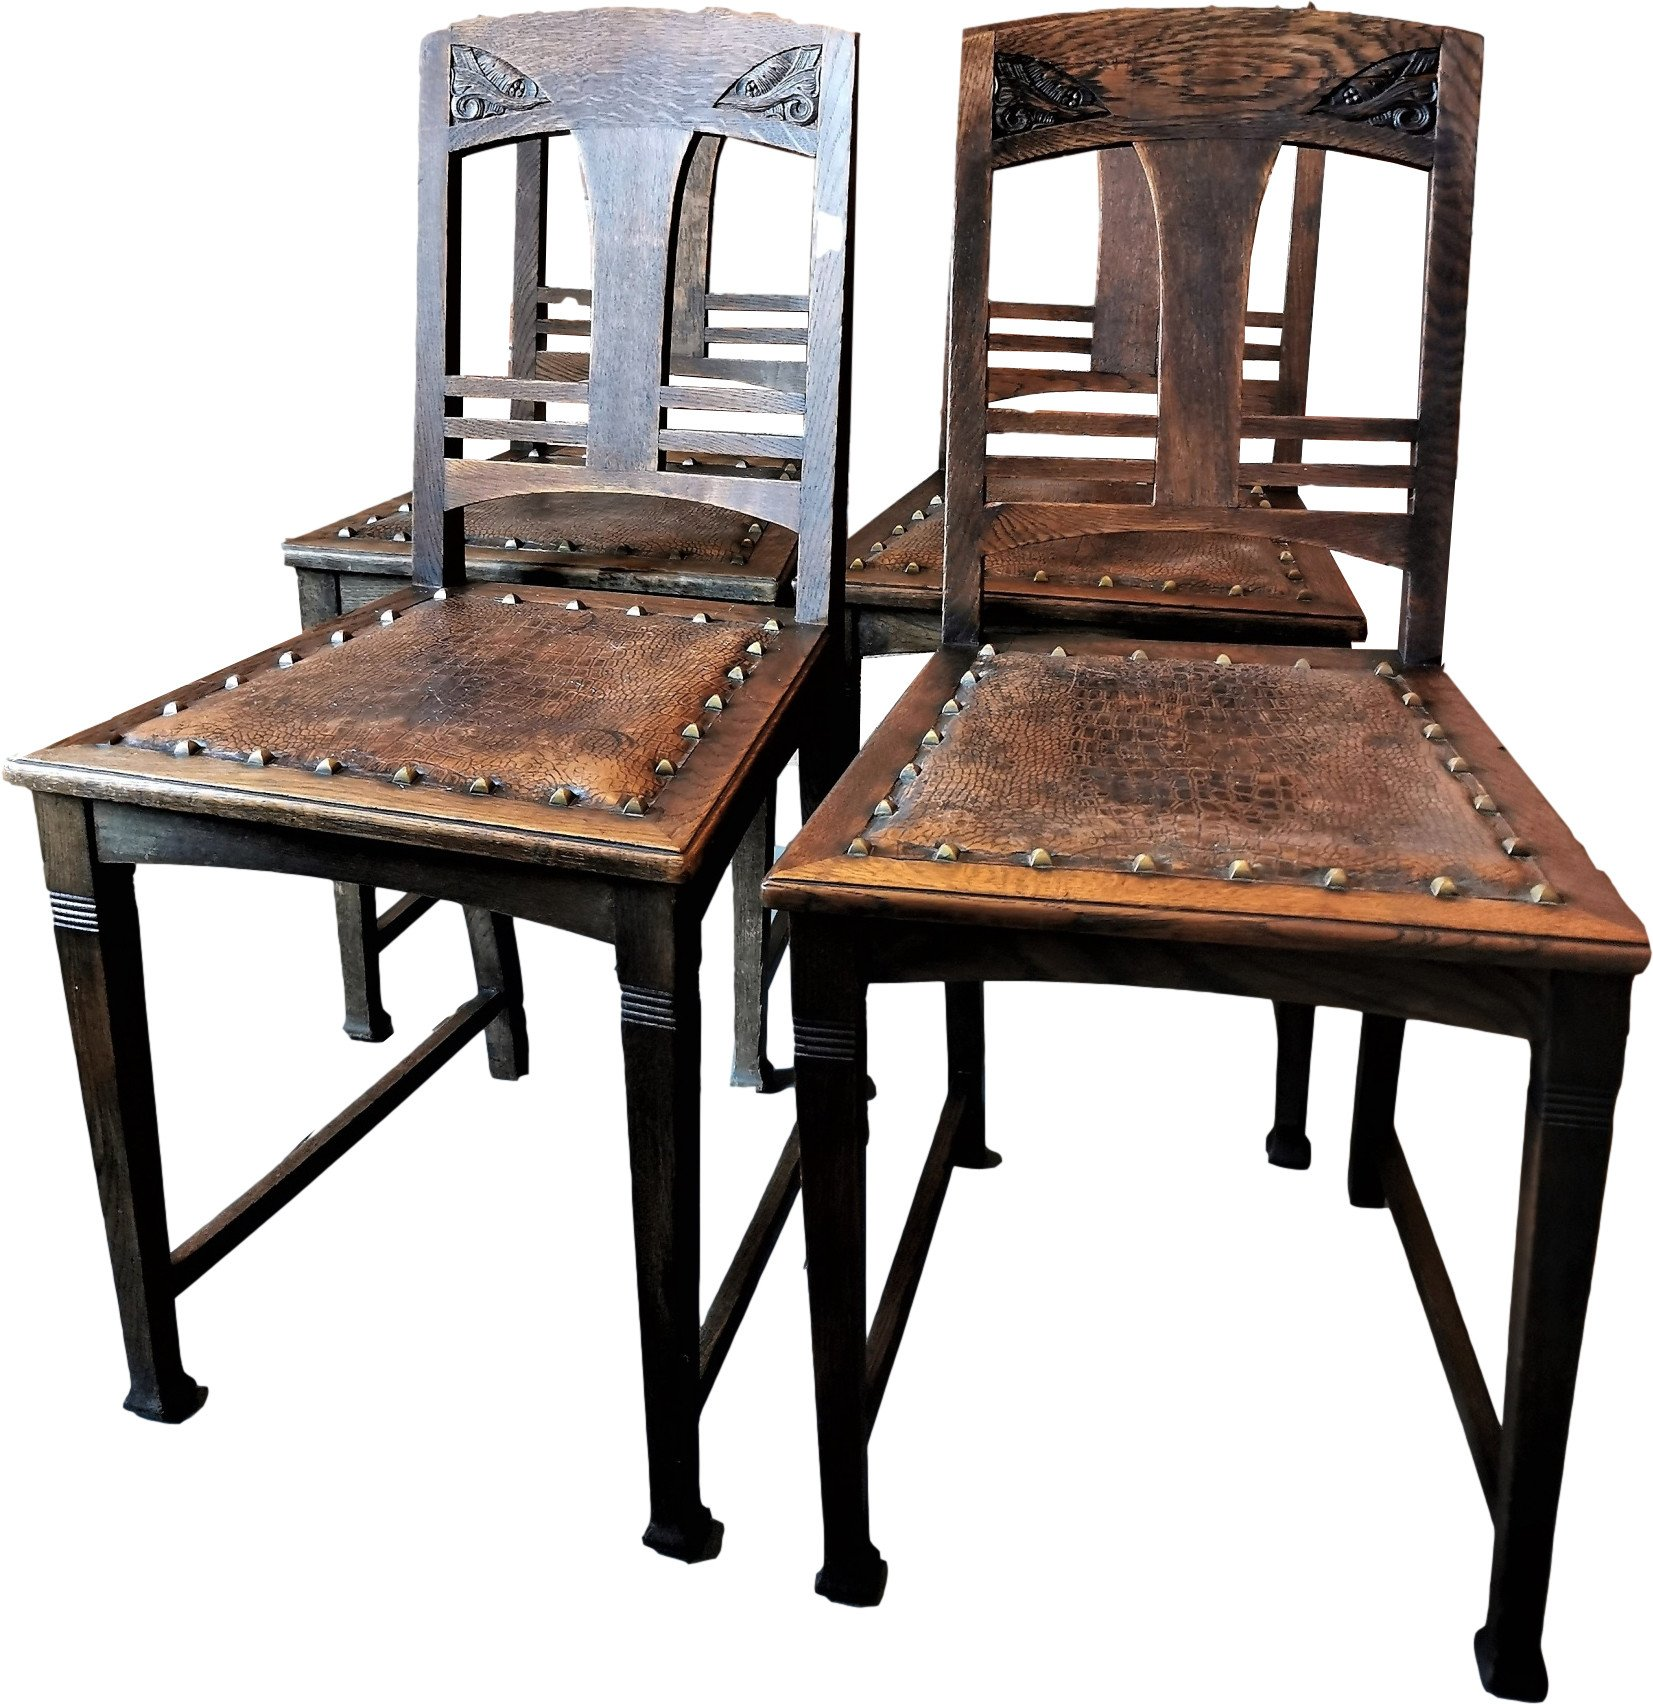 Set of Four Chairs, early 20th C. - 503989 - photo